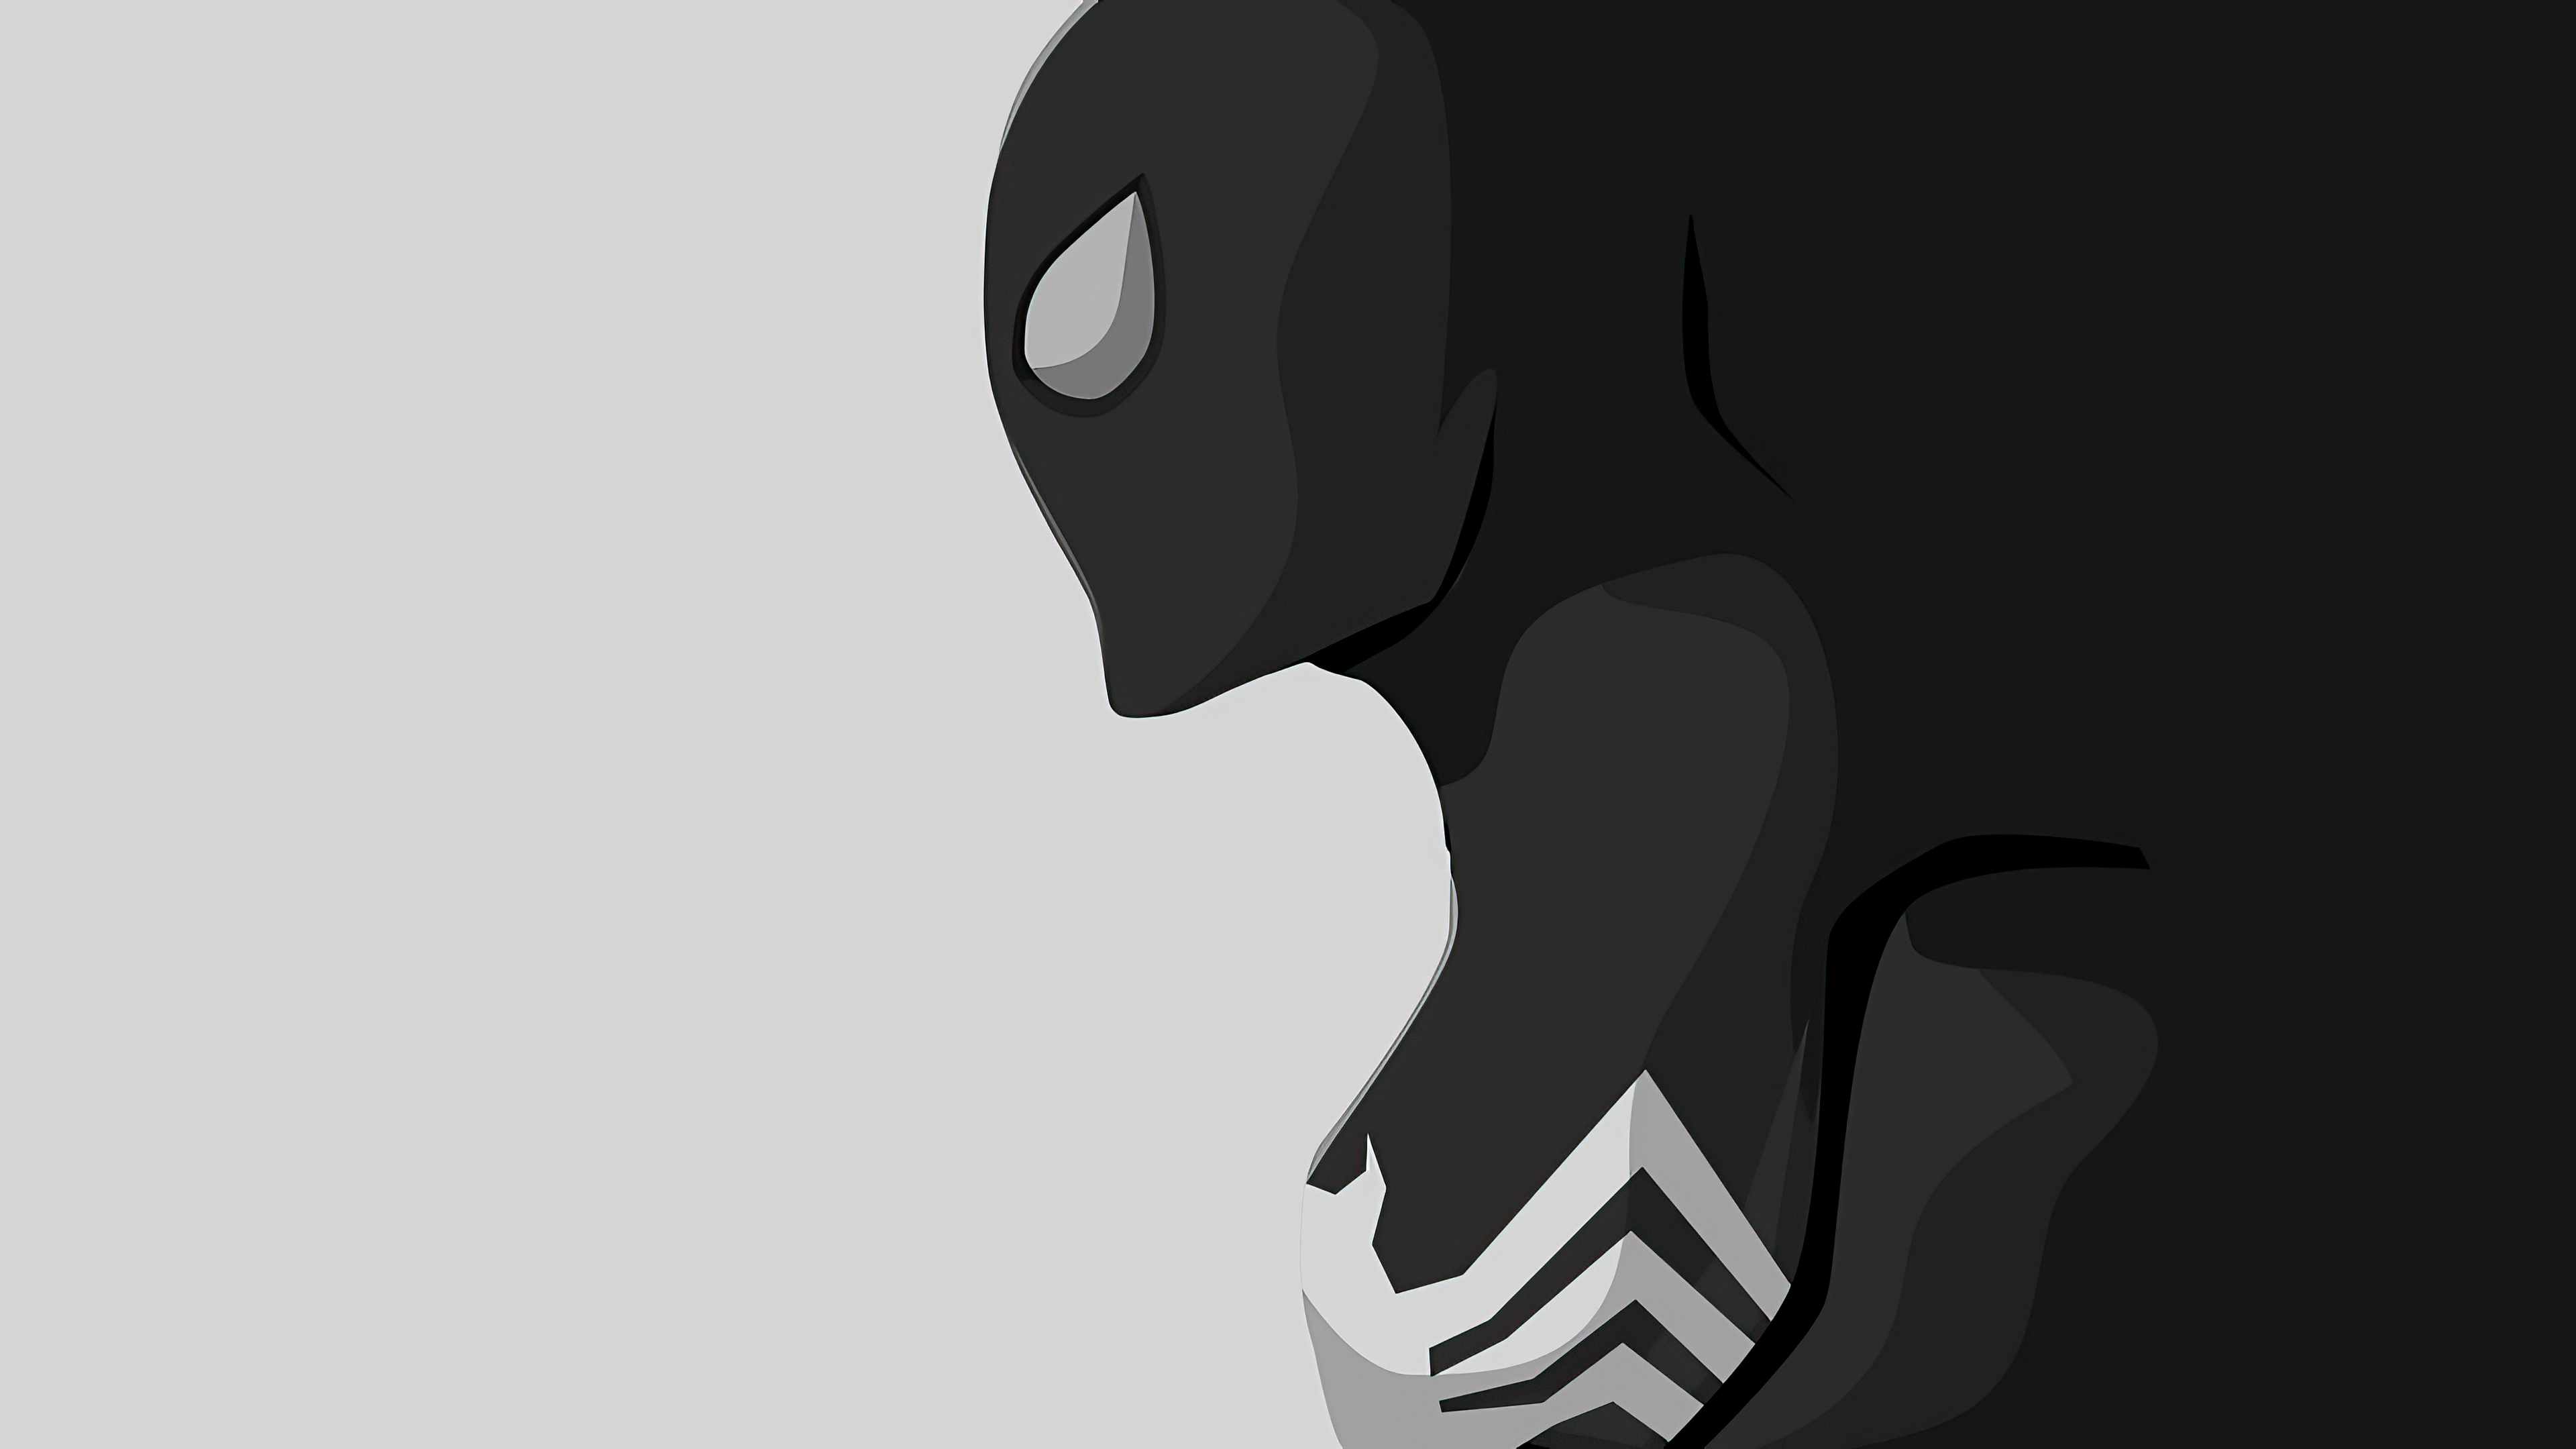 Wallpaper Black Spiderman minimalist style